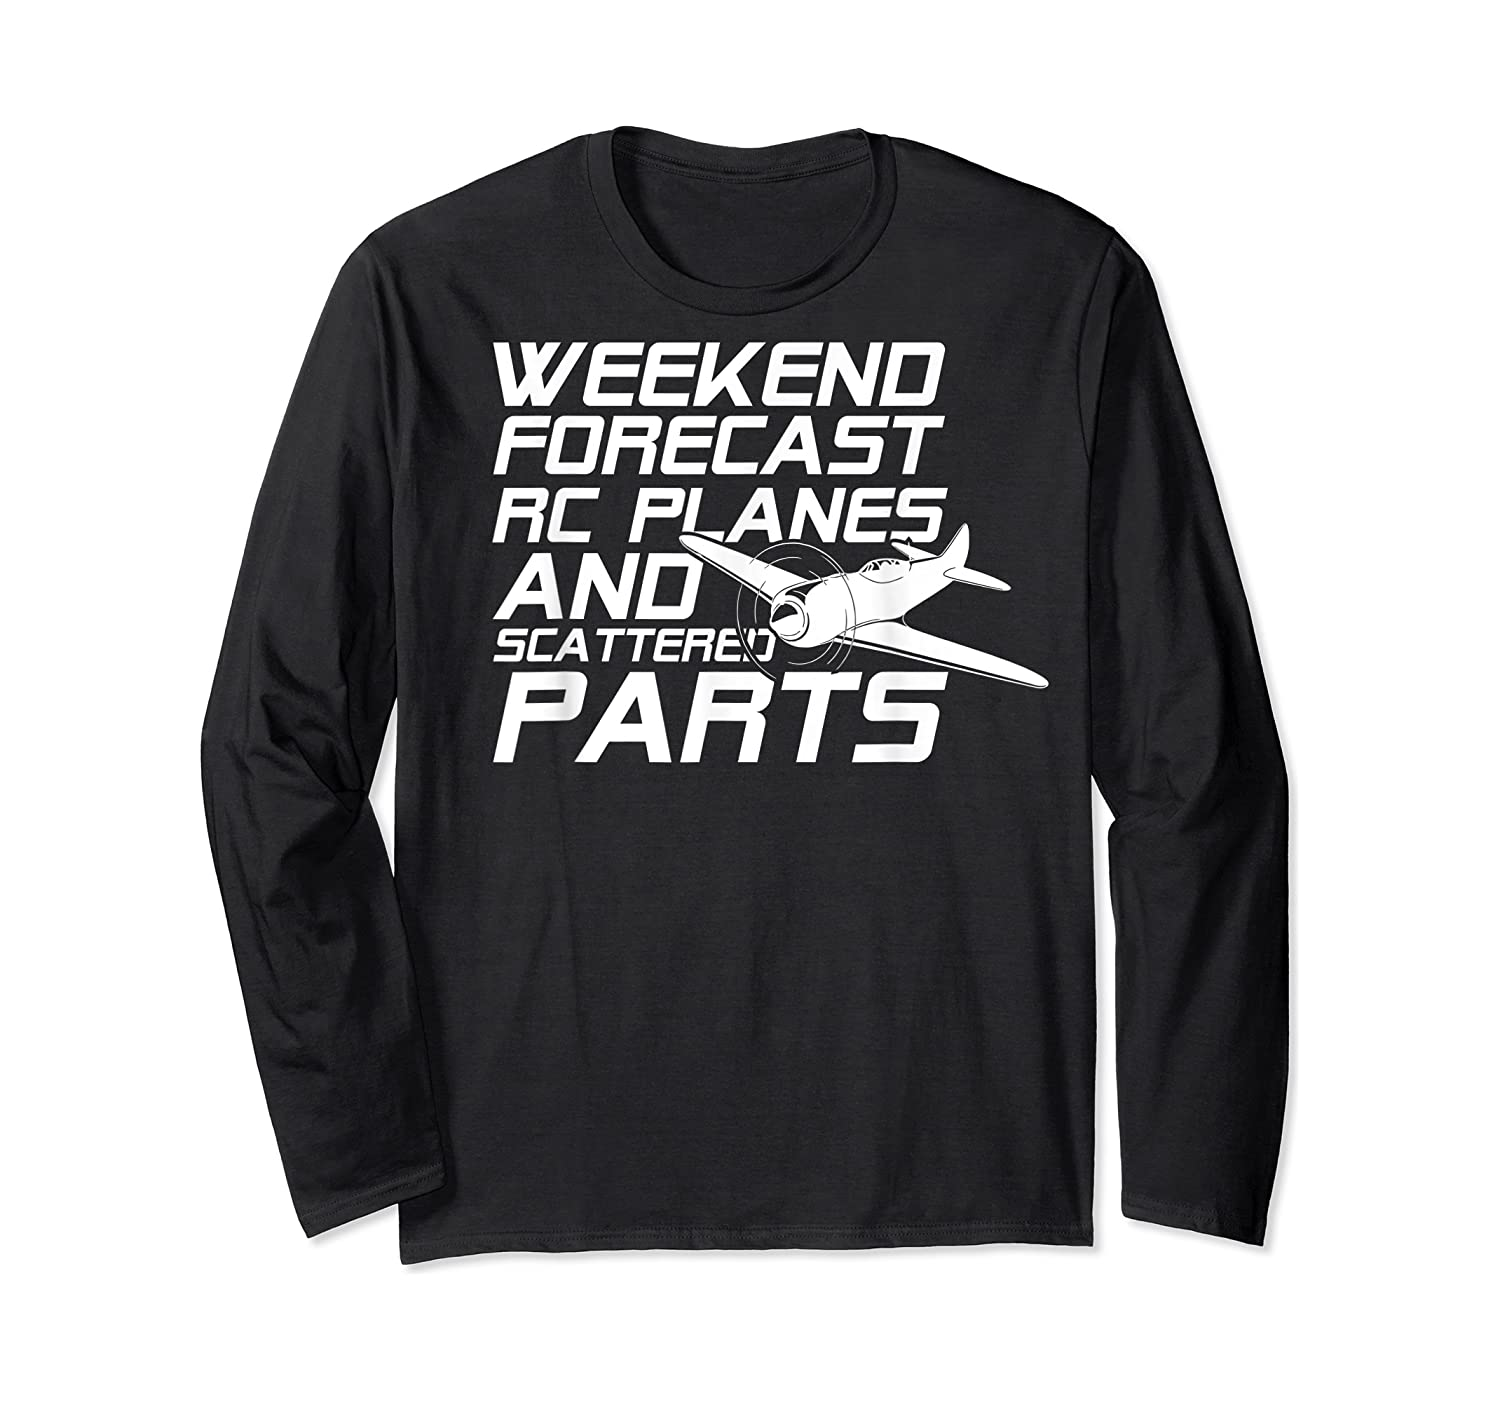 Rc Plane T-shirt For Guys Rc Planes And Scattered Parts Long Sleeve T-shirt